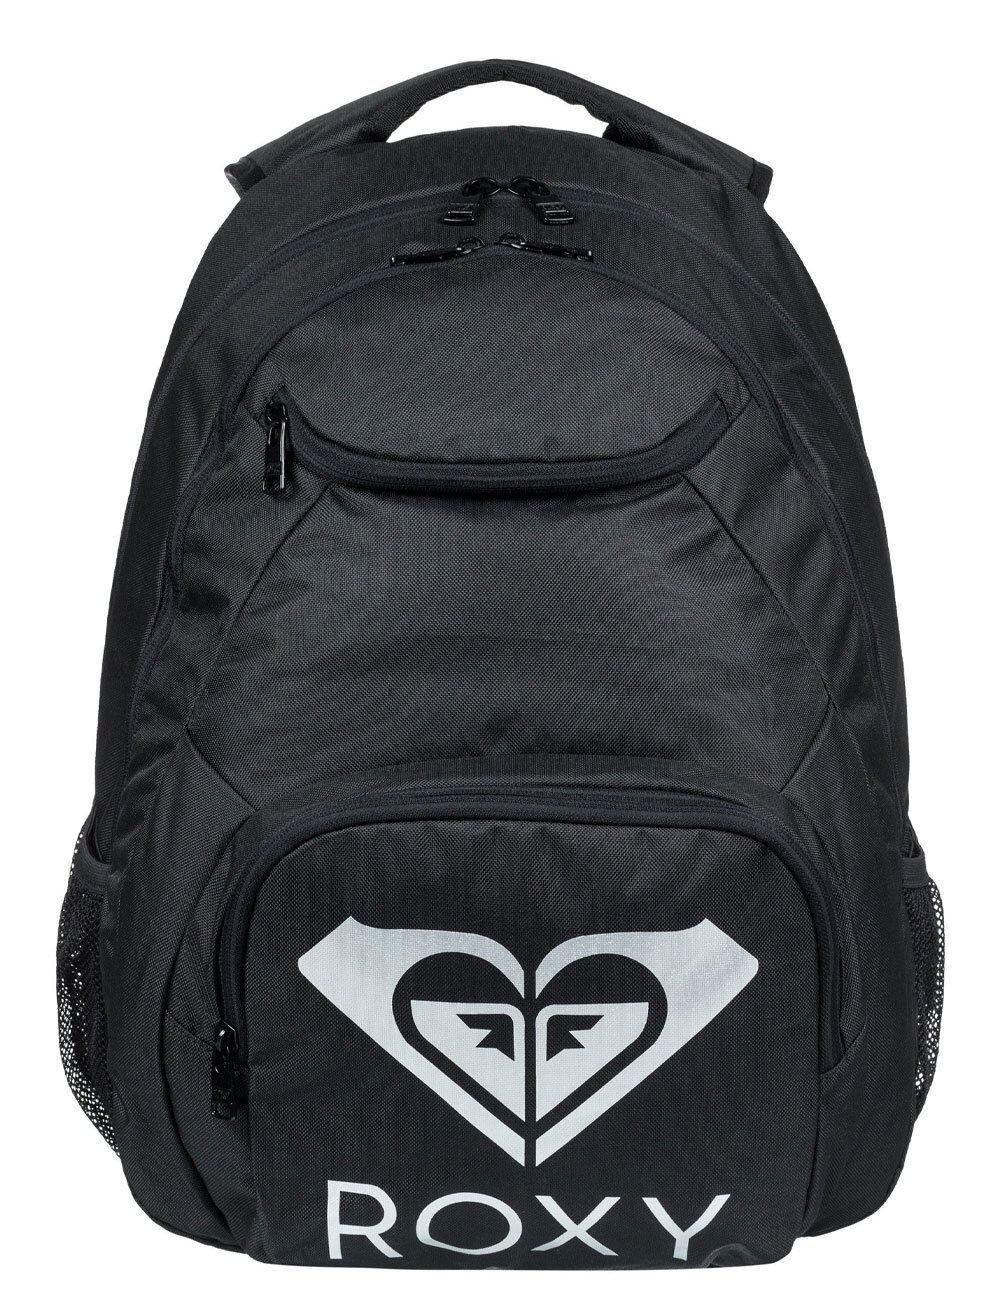 888b6c99e4f SHADOW SWELL SOLID LOGO BACKPACK